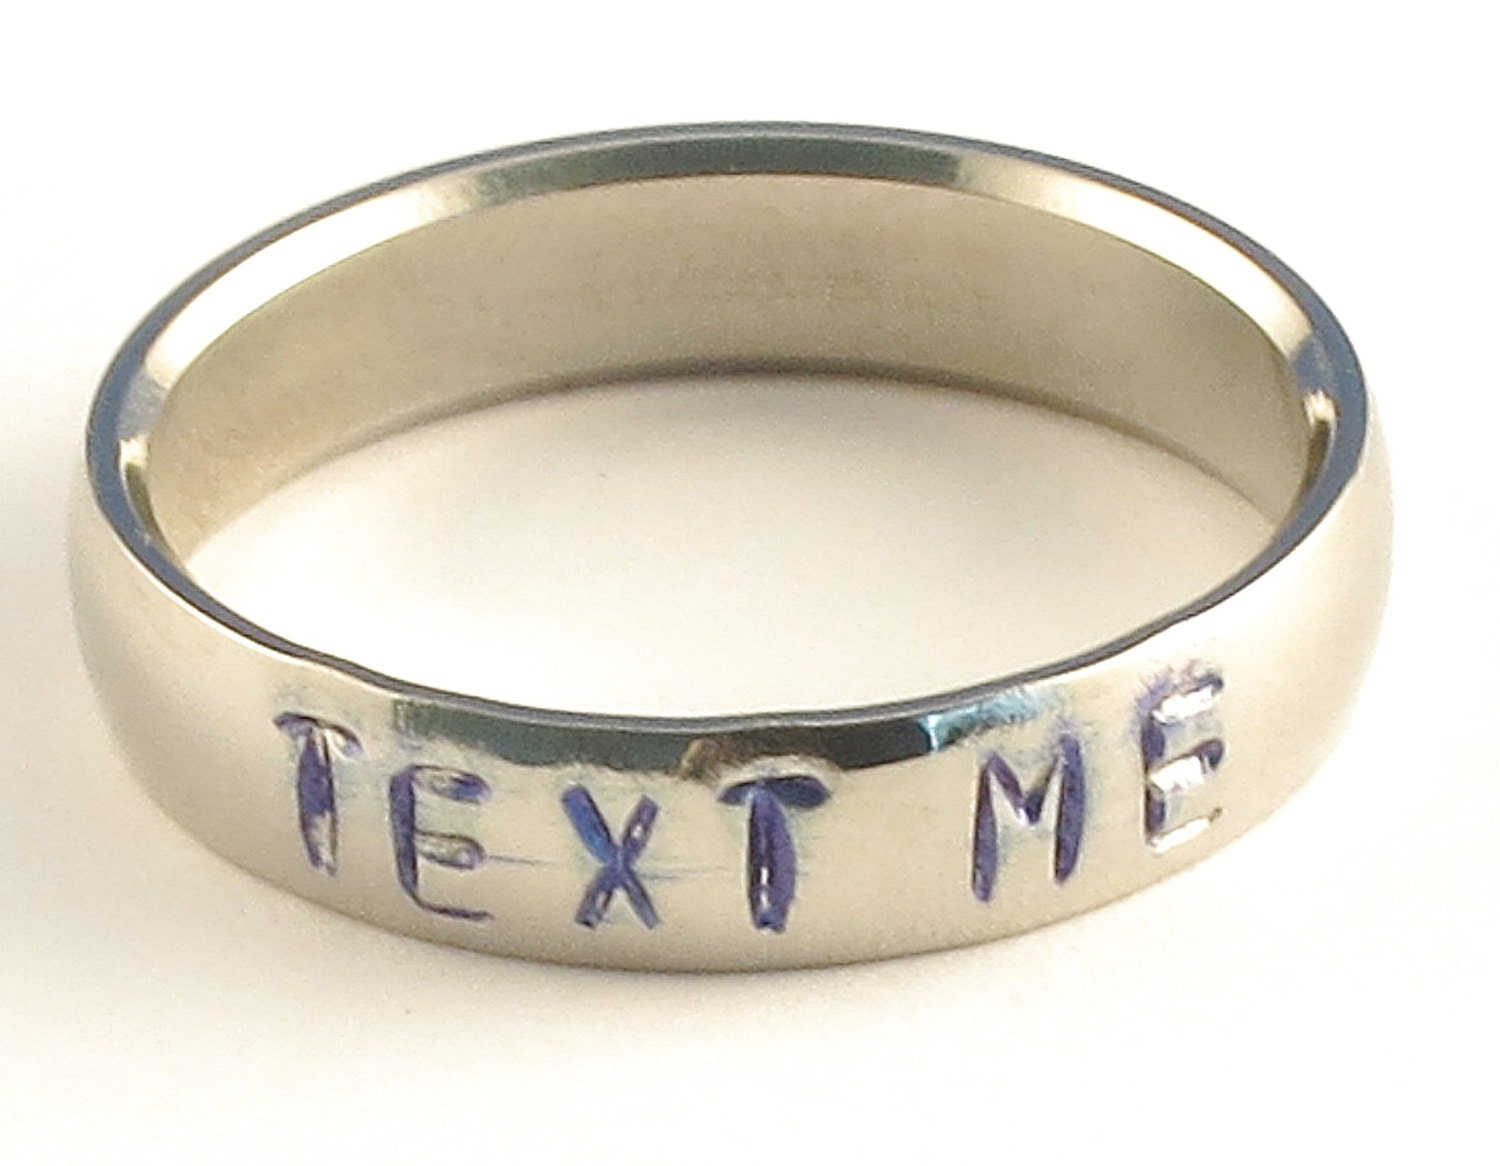 TEXT ME - Personalized Stainless Steel Low Dome Hand Stamped Name Ring 5mm Ring Sizes 3-14